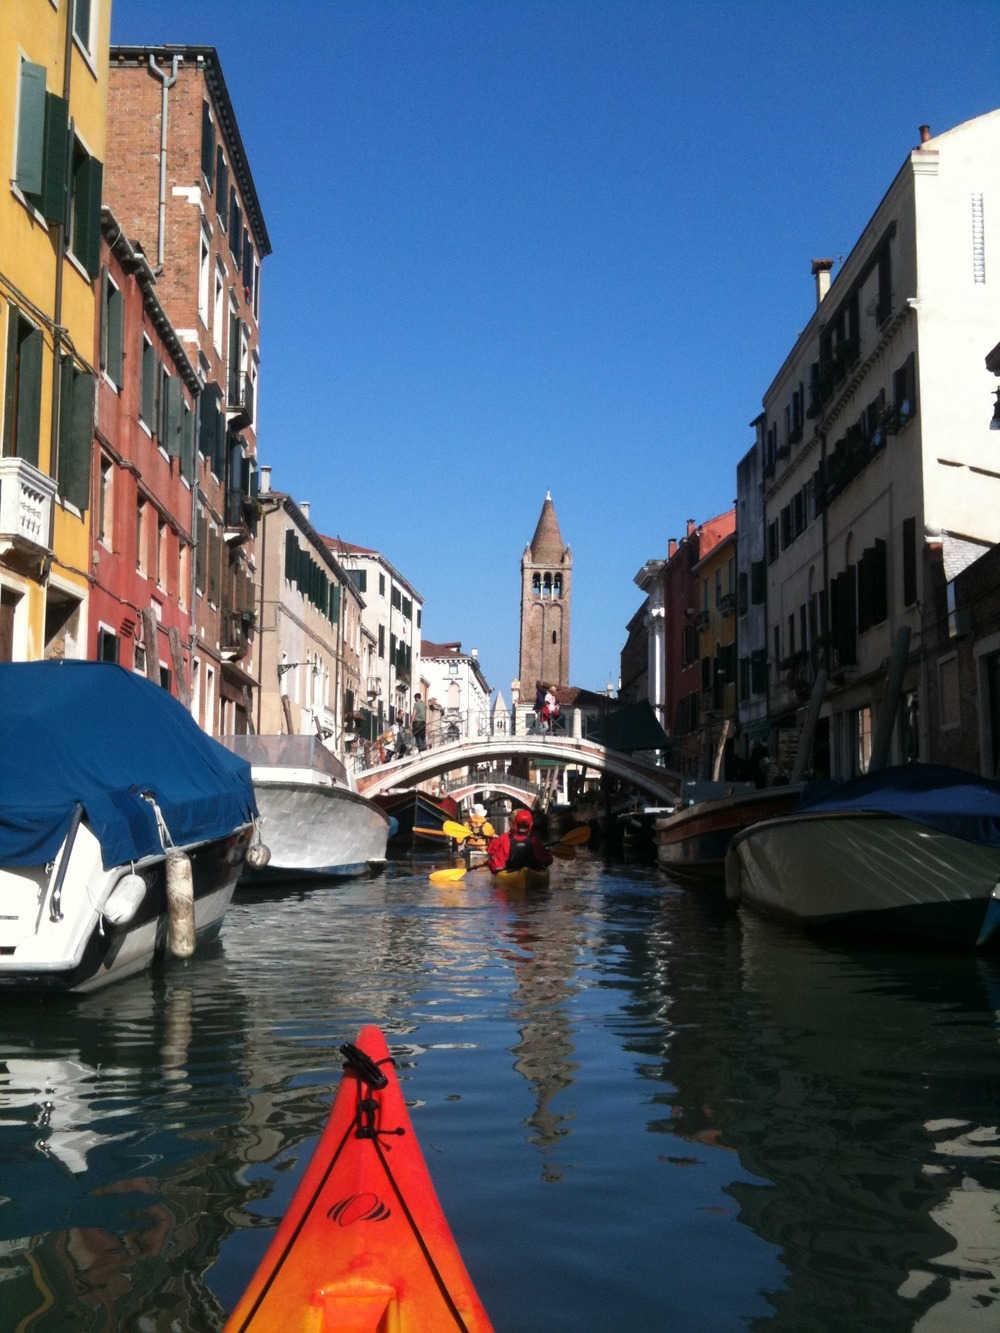 Kayaking Venice - Mobile Photos - Day 4